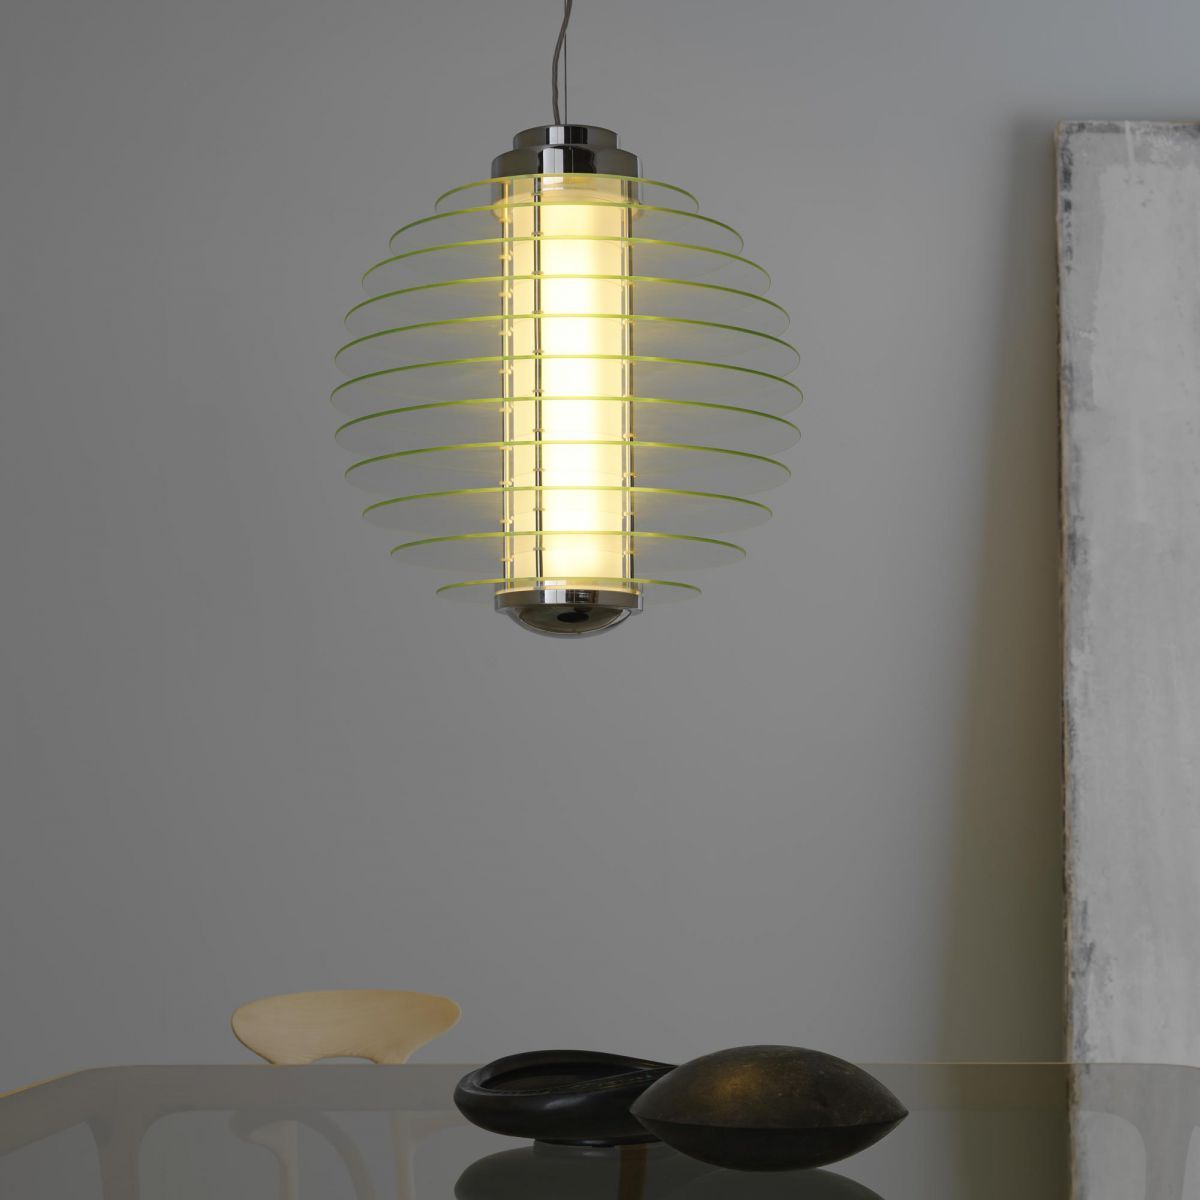 Suspension lamp 0024 1933 Gio Ponti FontanaArte